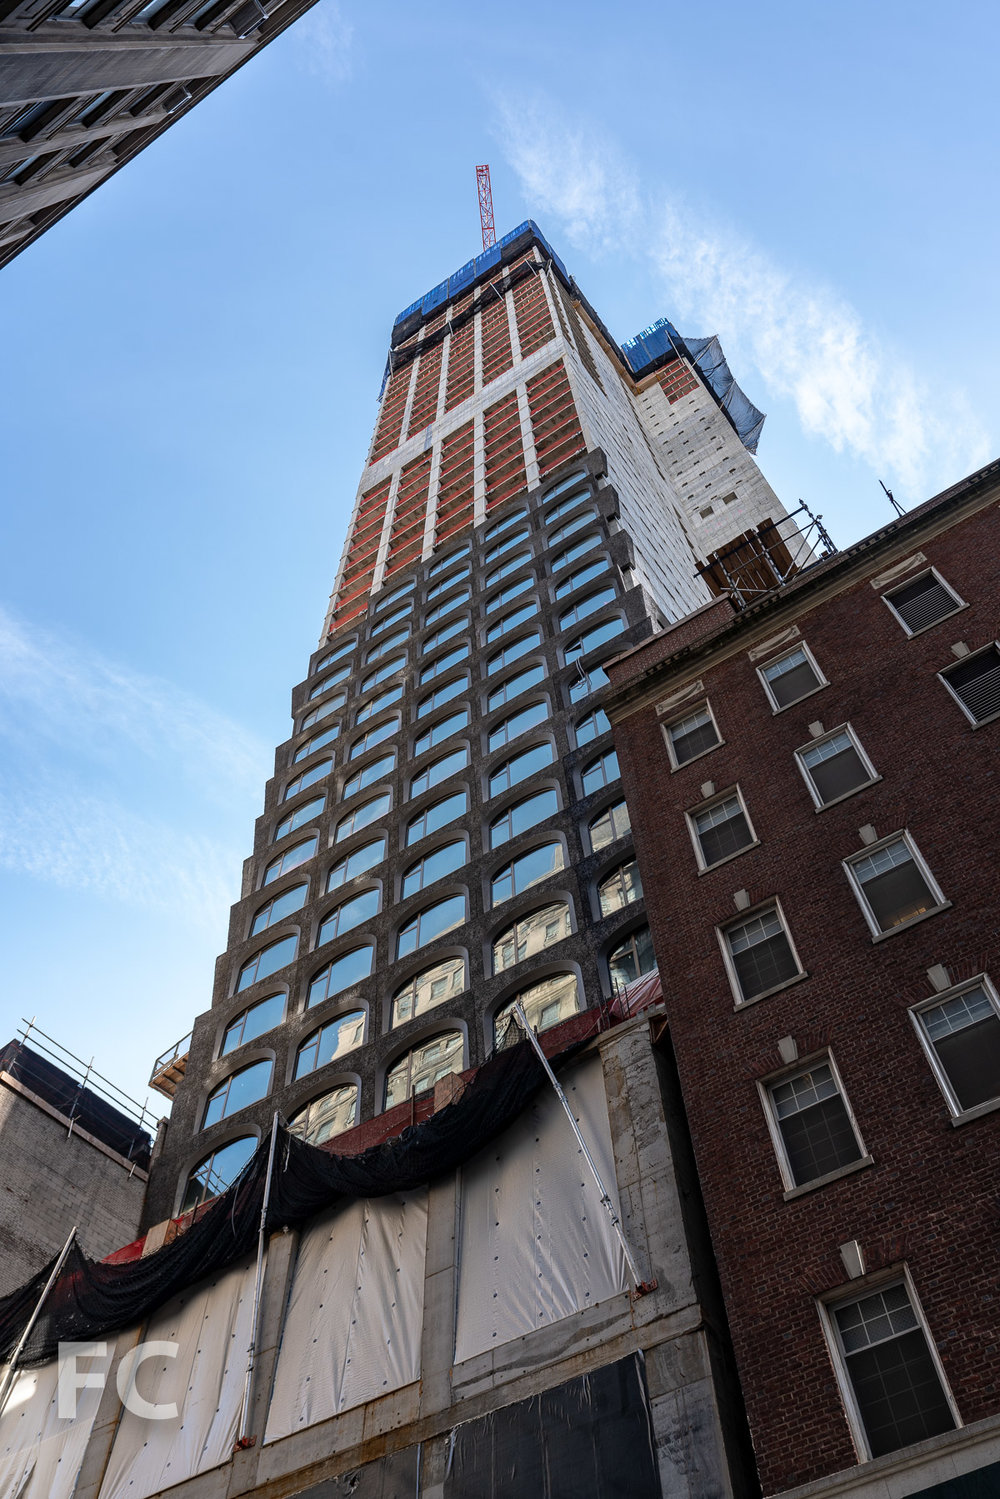 Looking up at the north facade from Fulton Street.